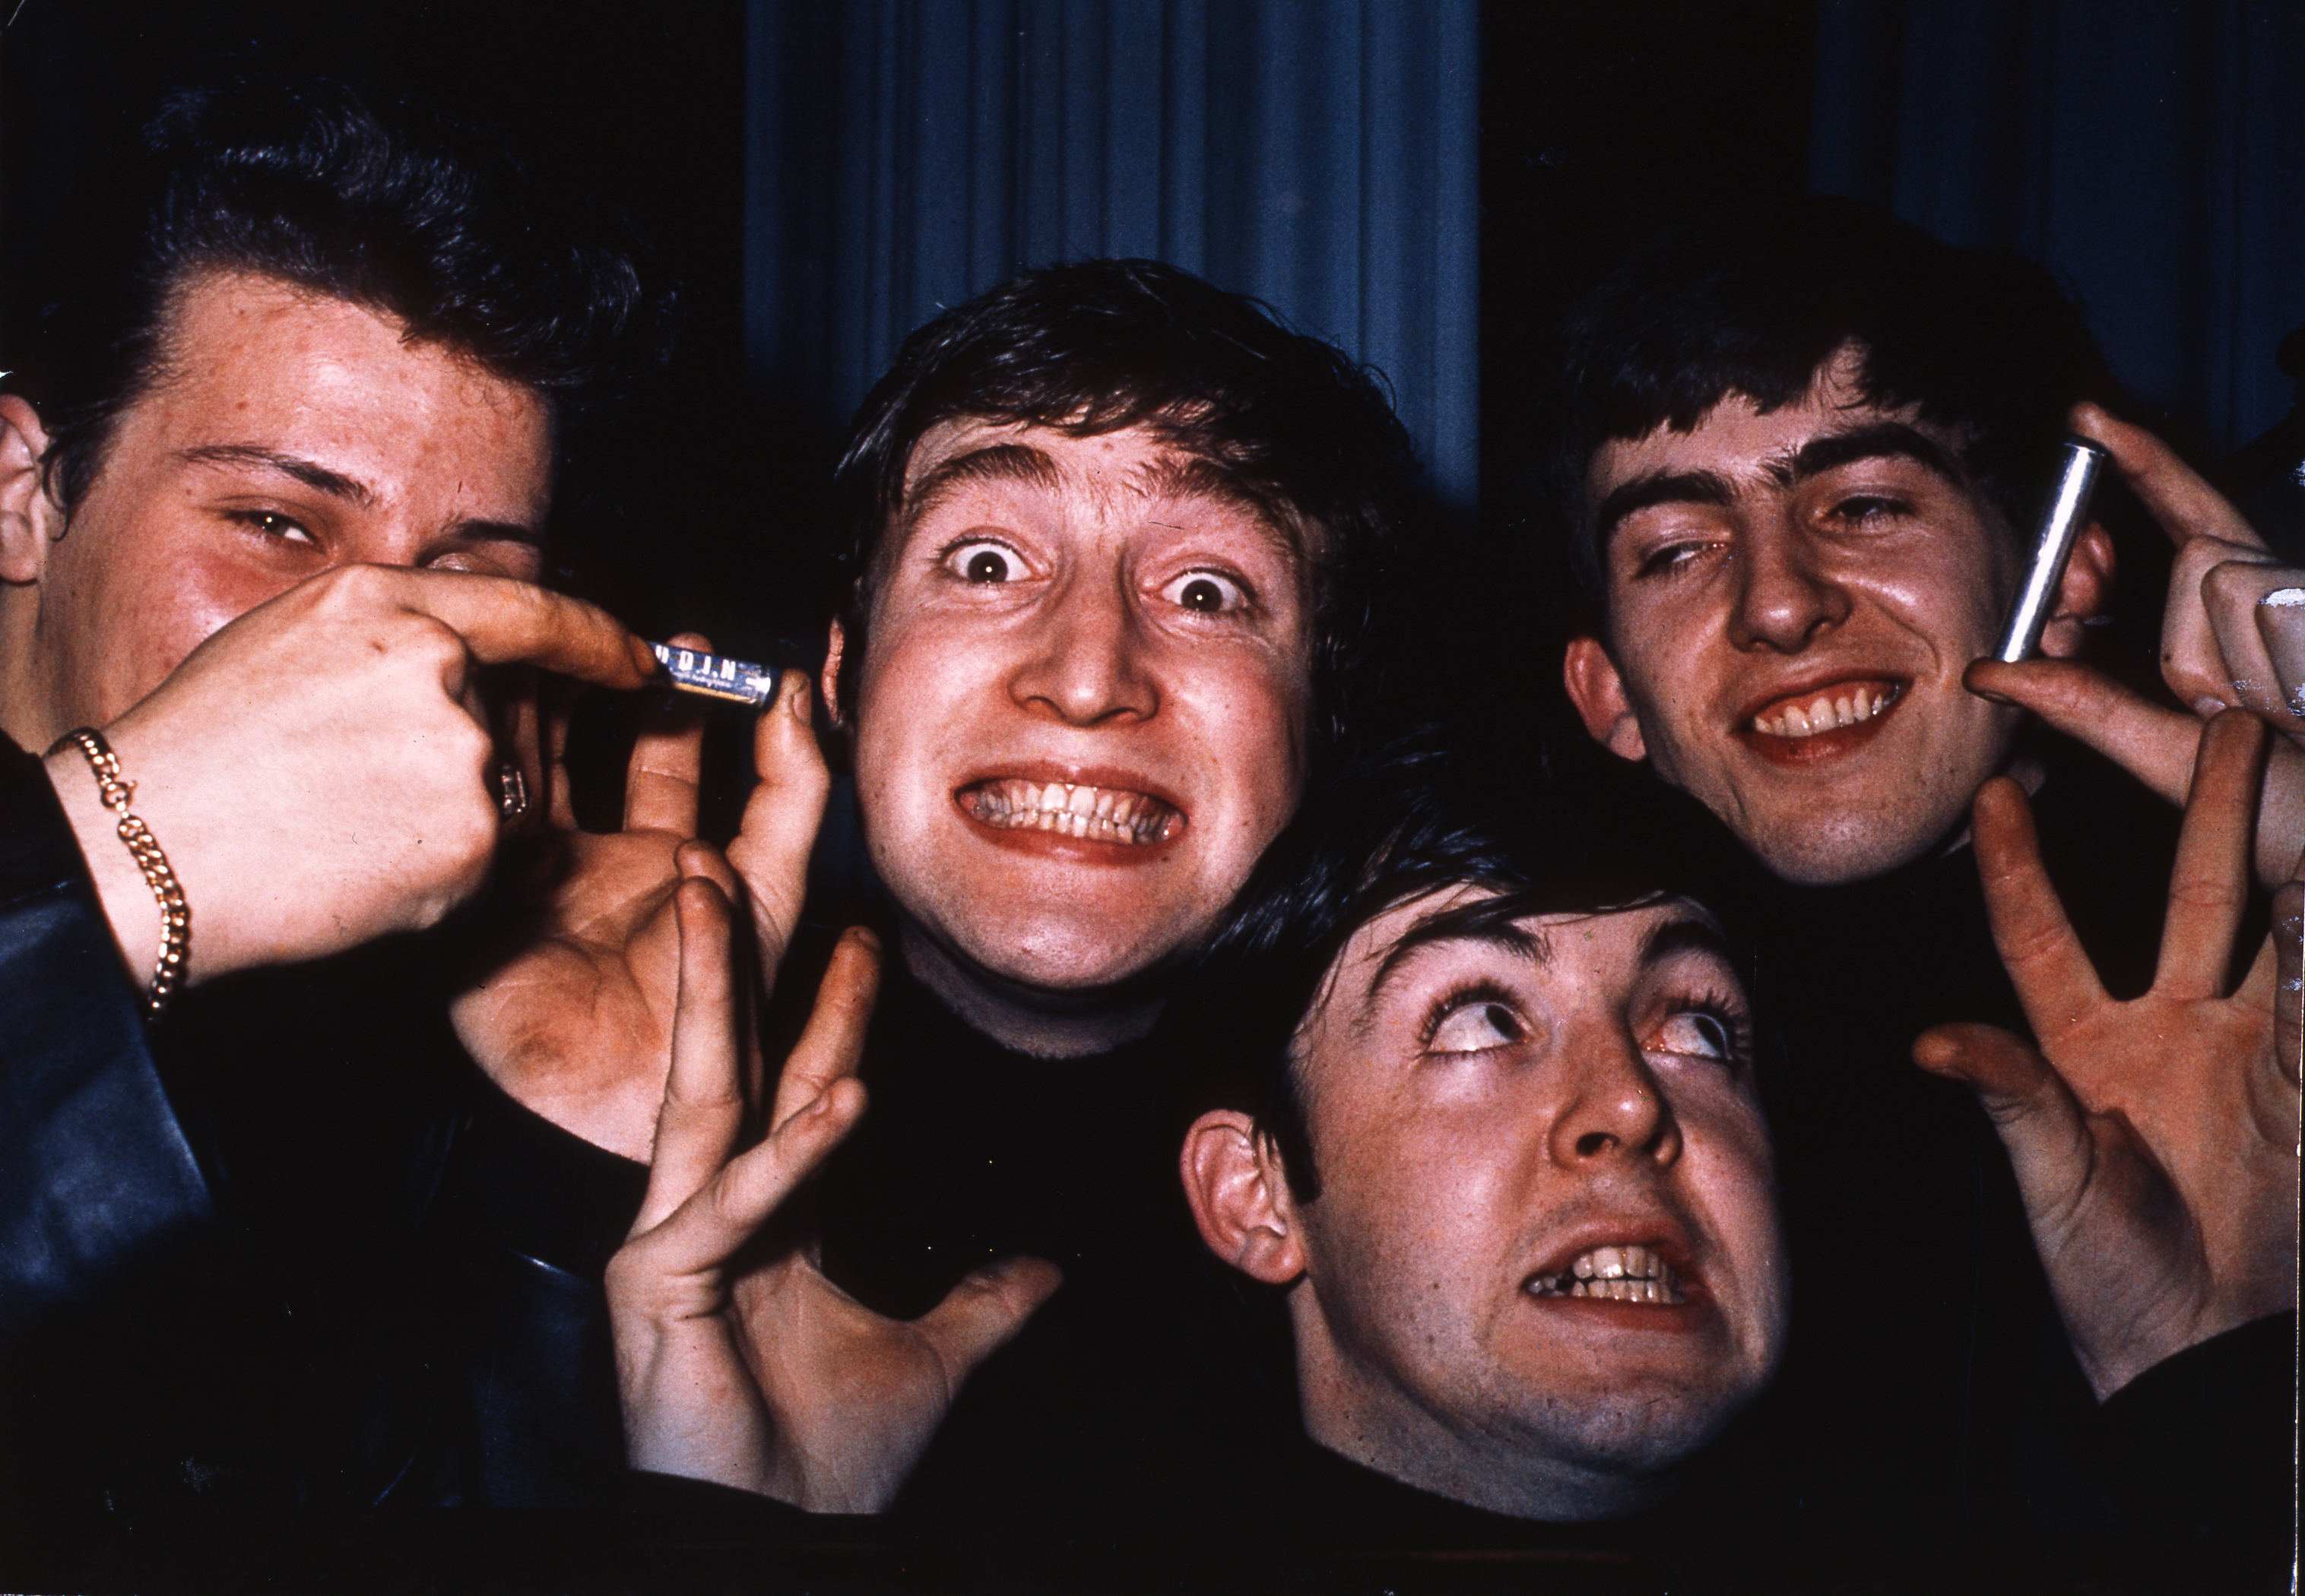 The Beatles posed in Hamburg, Germany during their residency at The Star Club in May 1962.